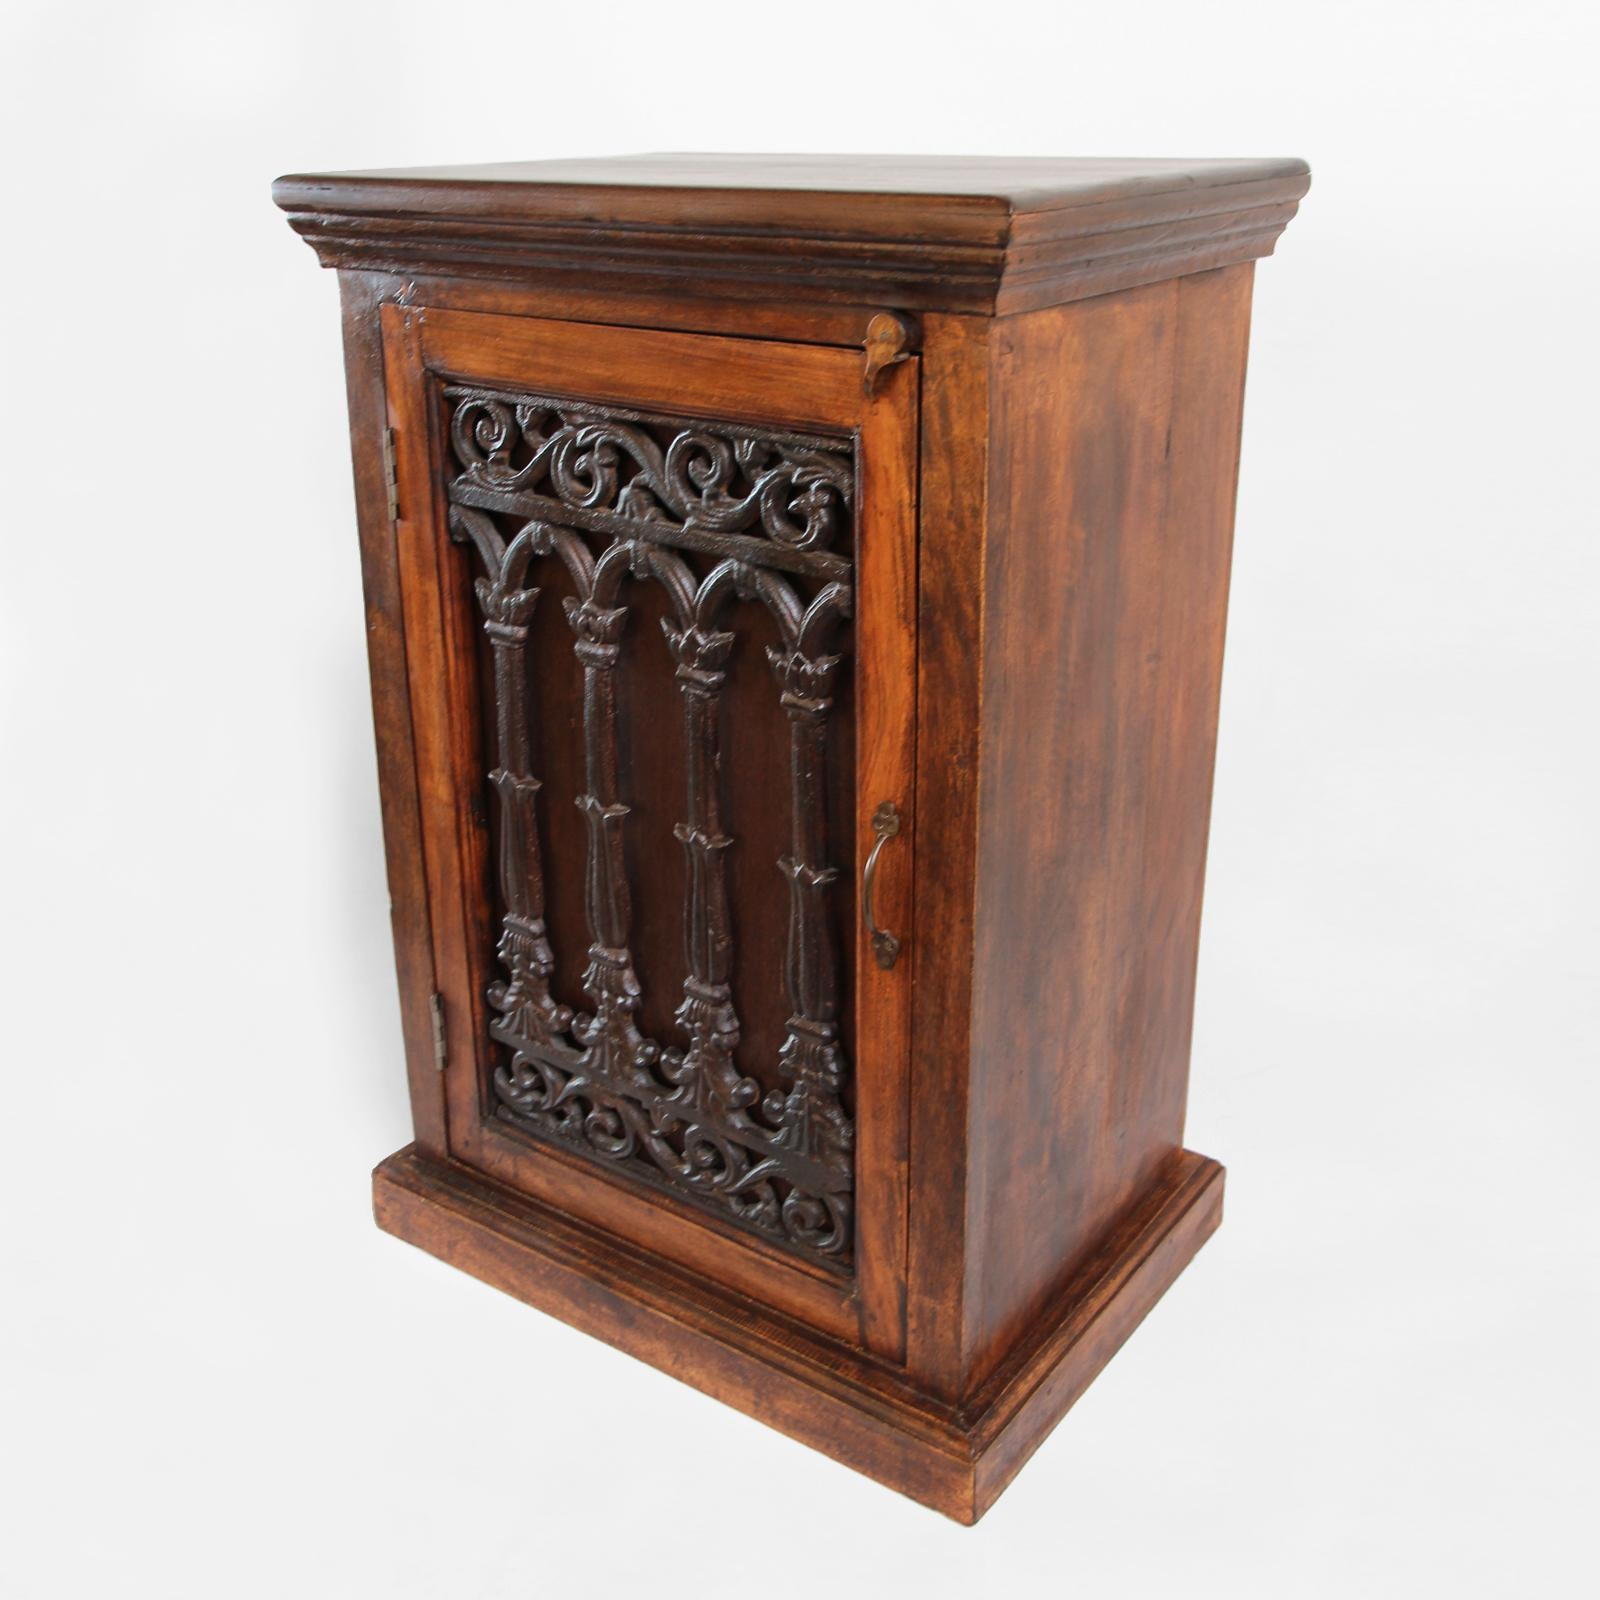 Dark Stained Mango Wood Bedside Cabinet With Vintage Cast Iron Doors. Two  Storage Shelves Are